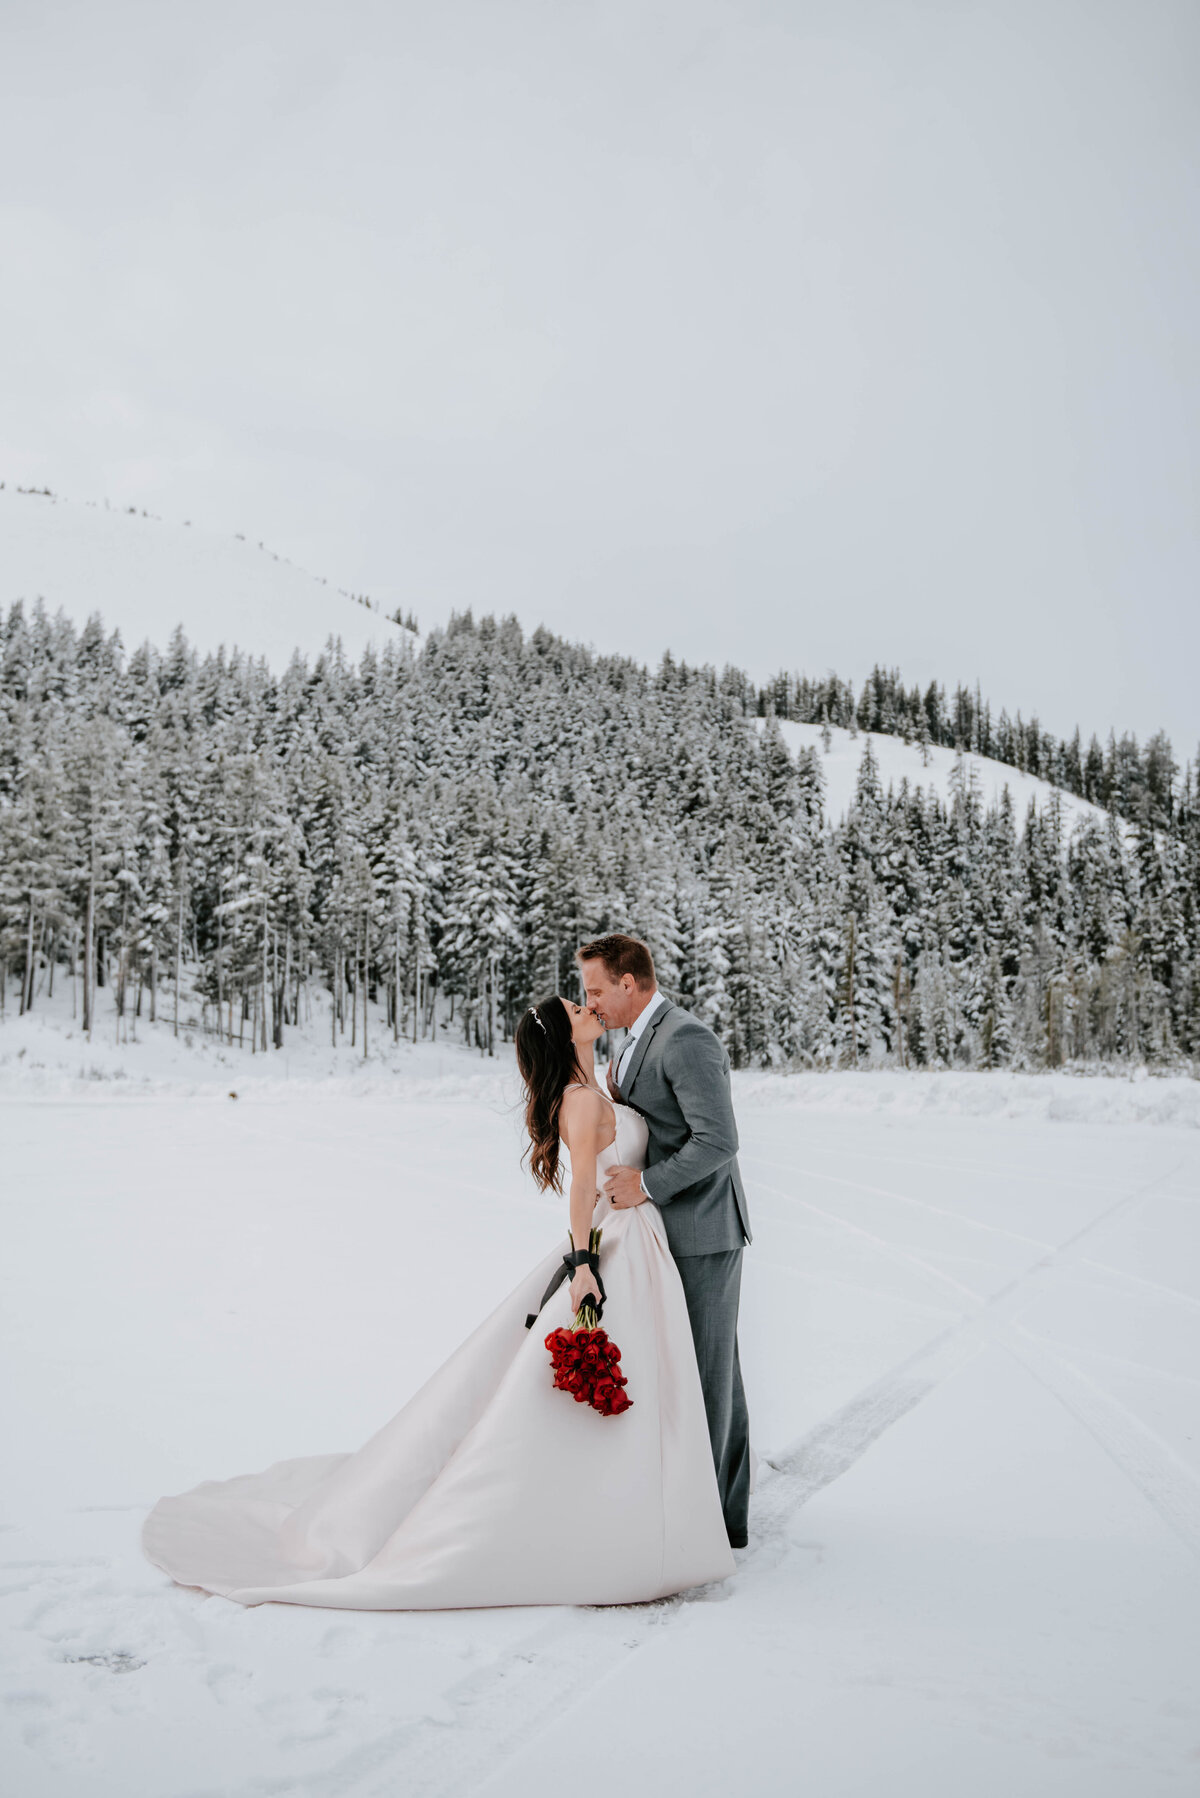 mt-bachelor-snow-winter-elopement-bend-oregon-wedding-photographer-2024